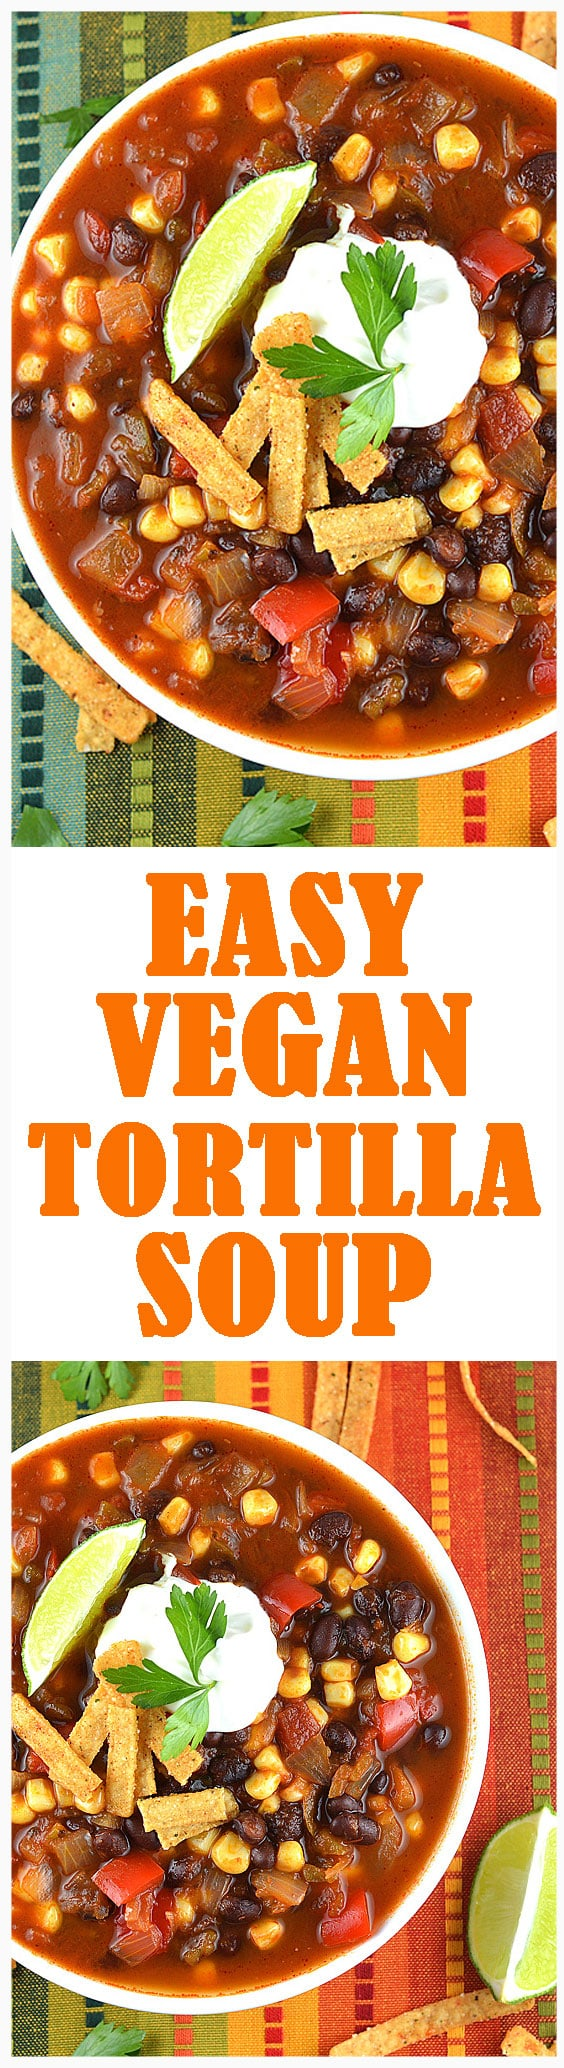 EASY VEGAN TORTILLA SOUP